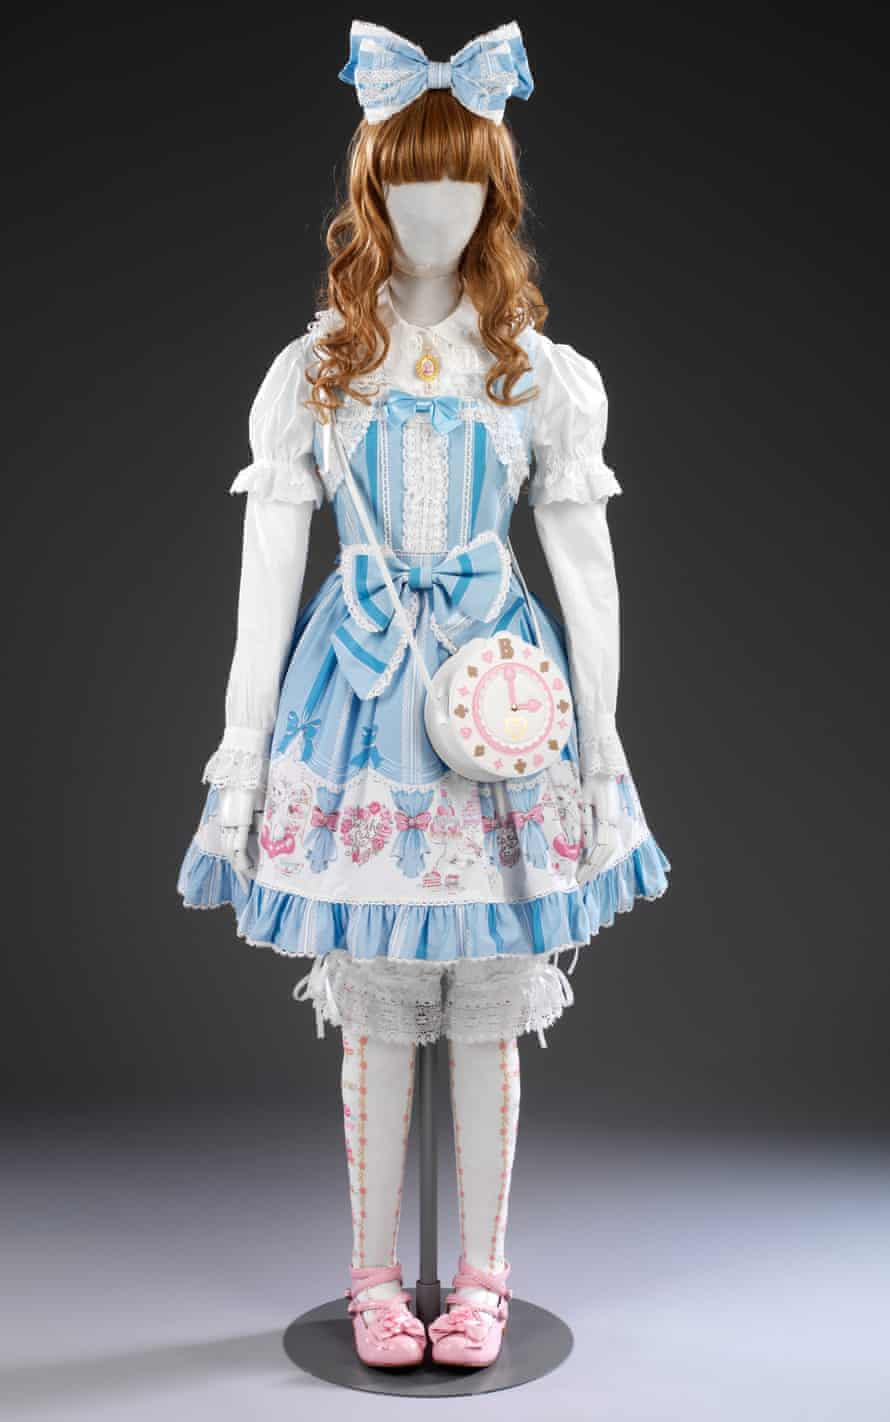 Sweet Lolita outfit, Japan, 21st century.